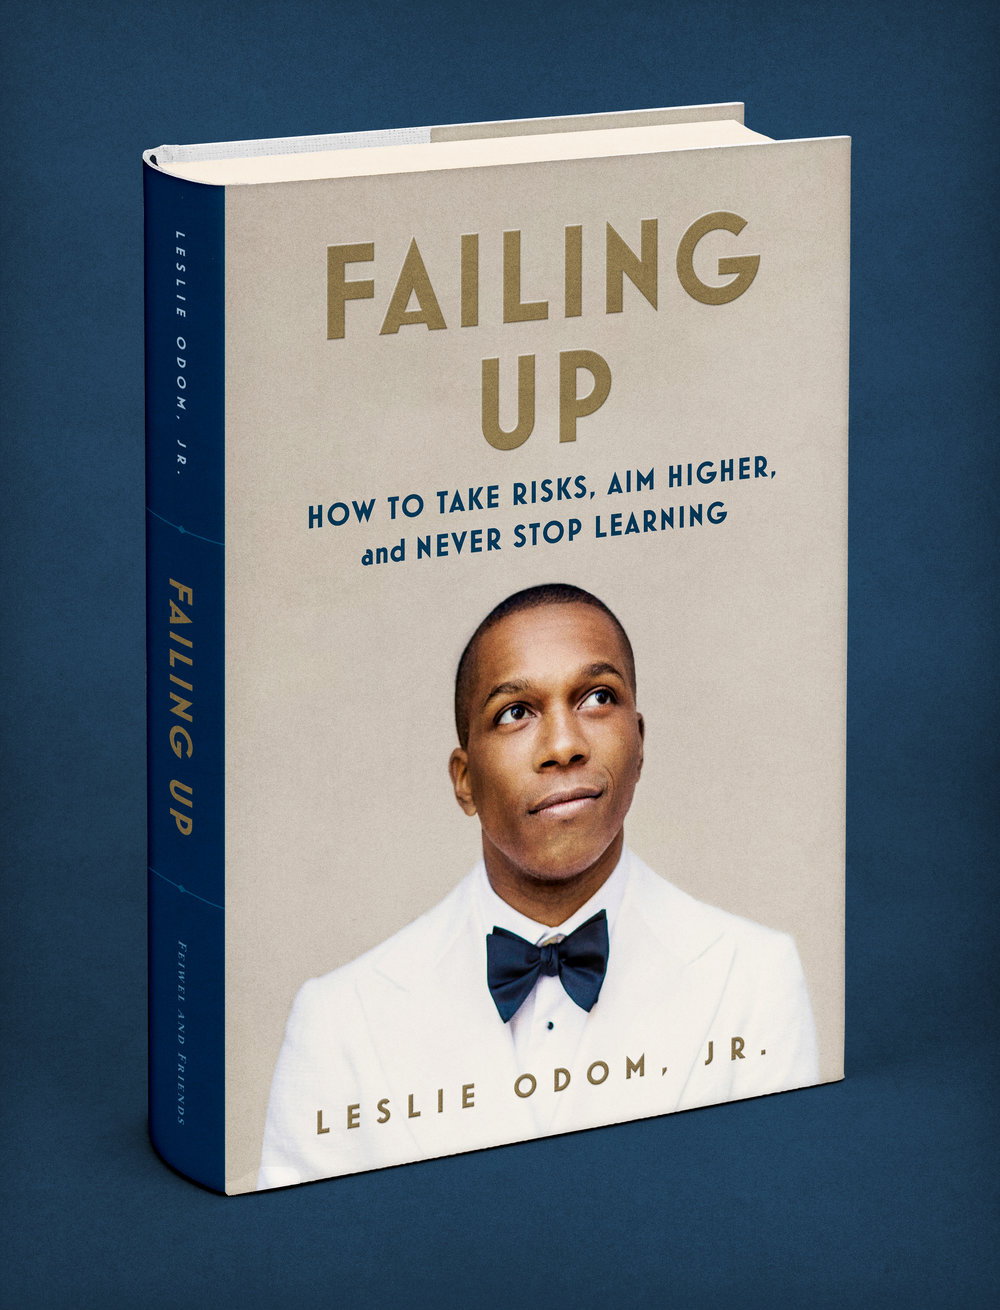 FailingUp_BookCover